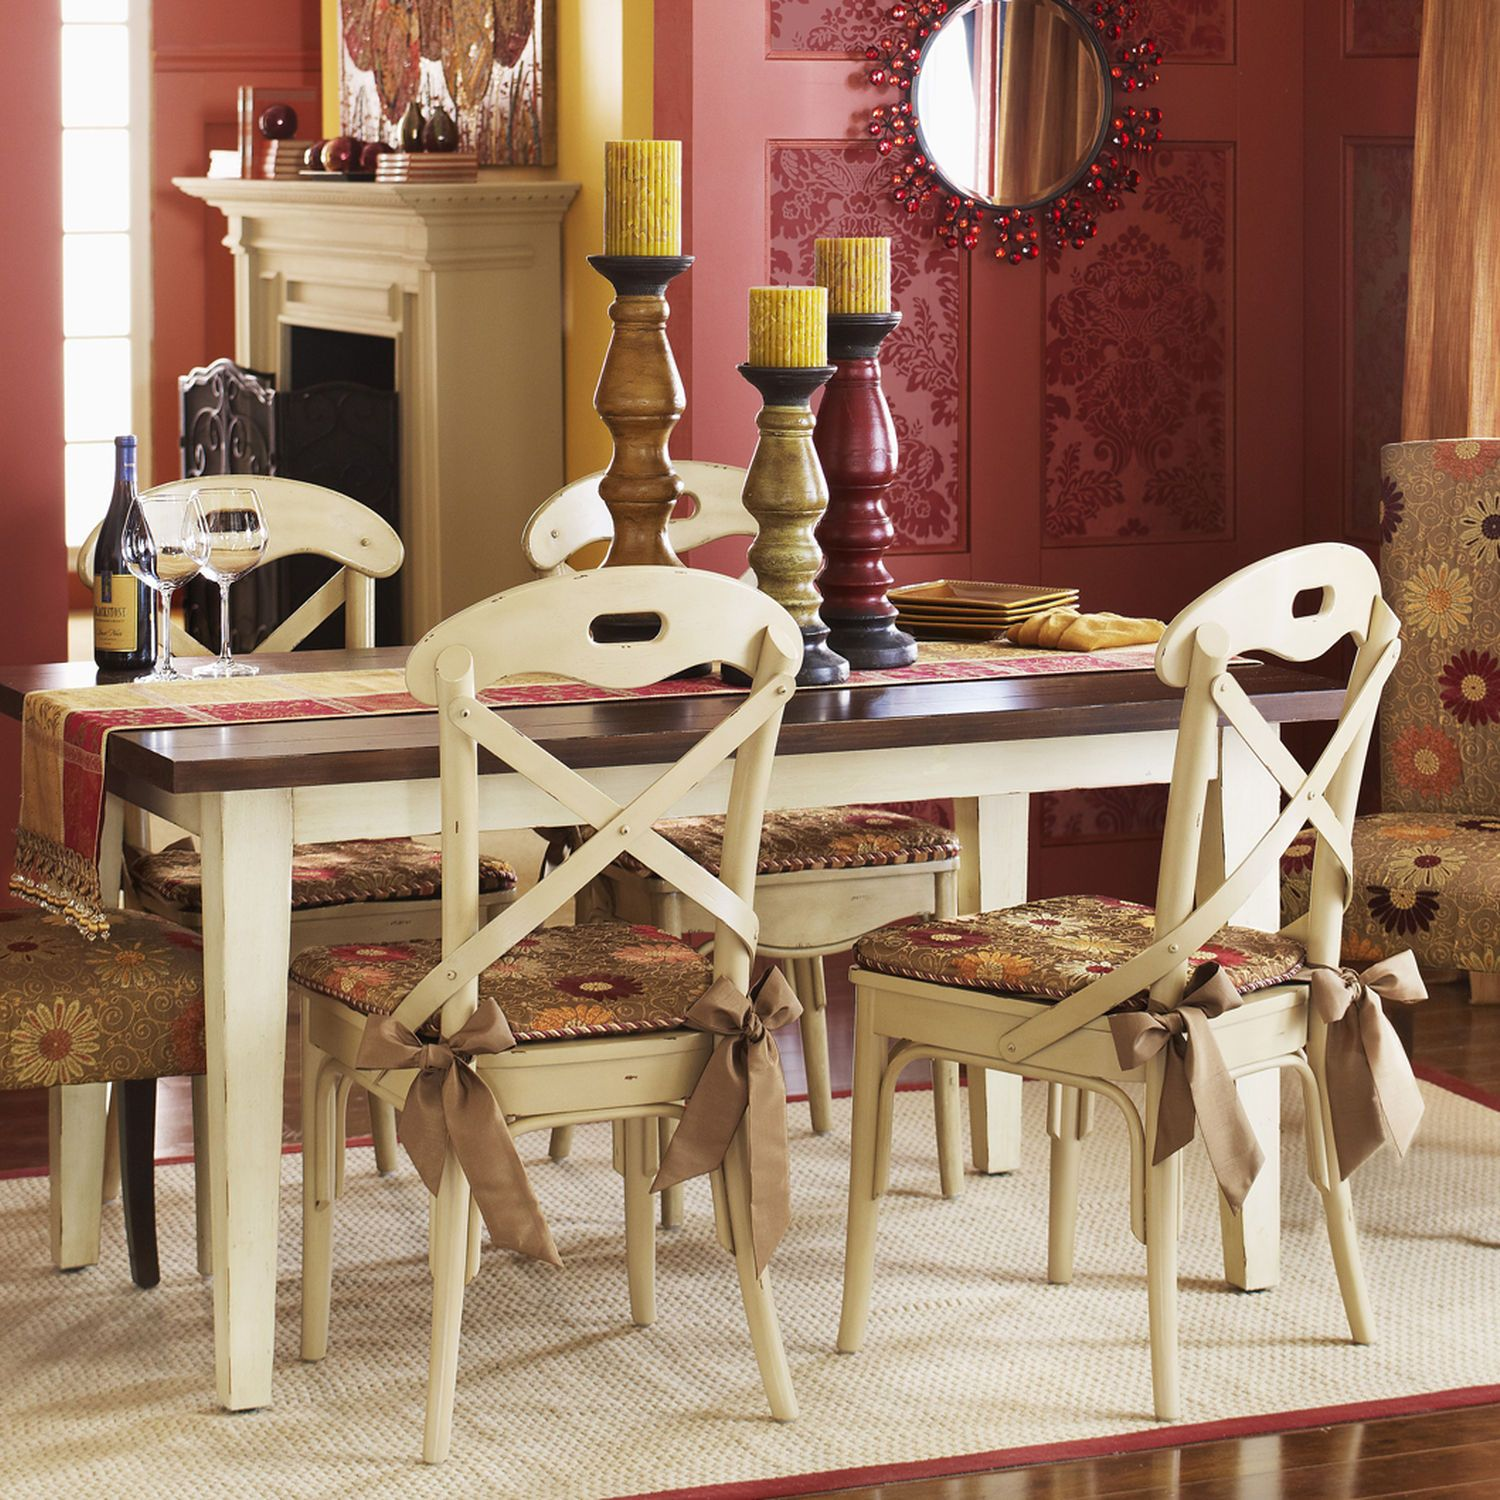 Mindi Freng Here Is That Table With The Chairs Carmichael